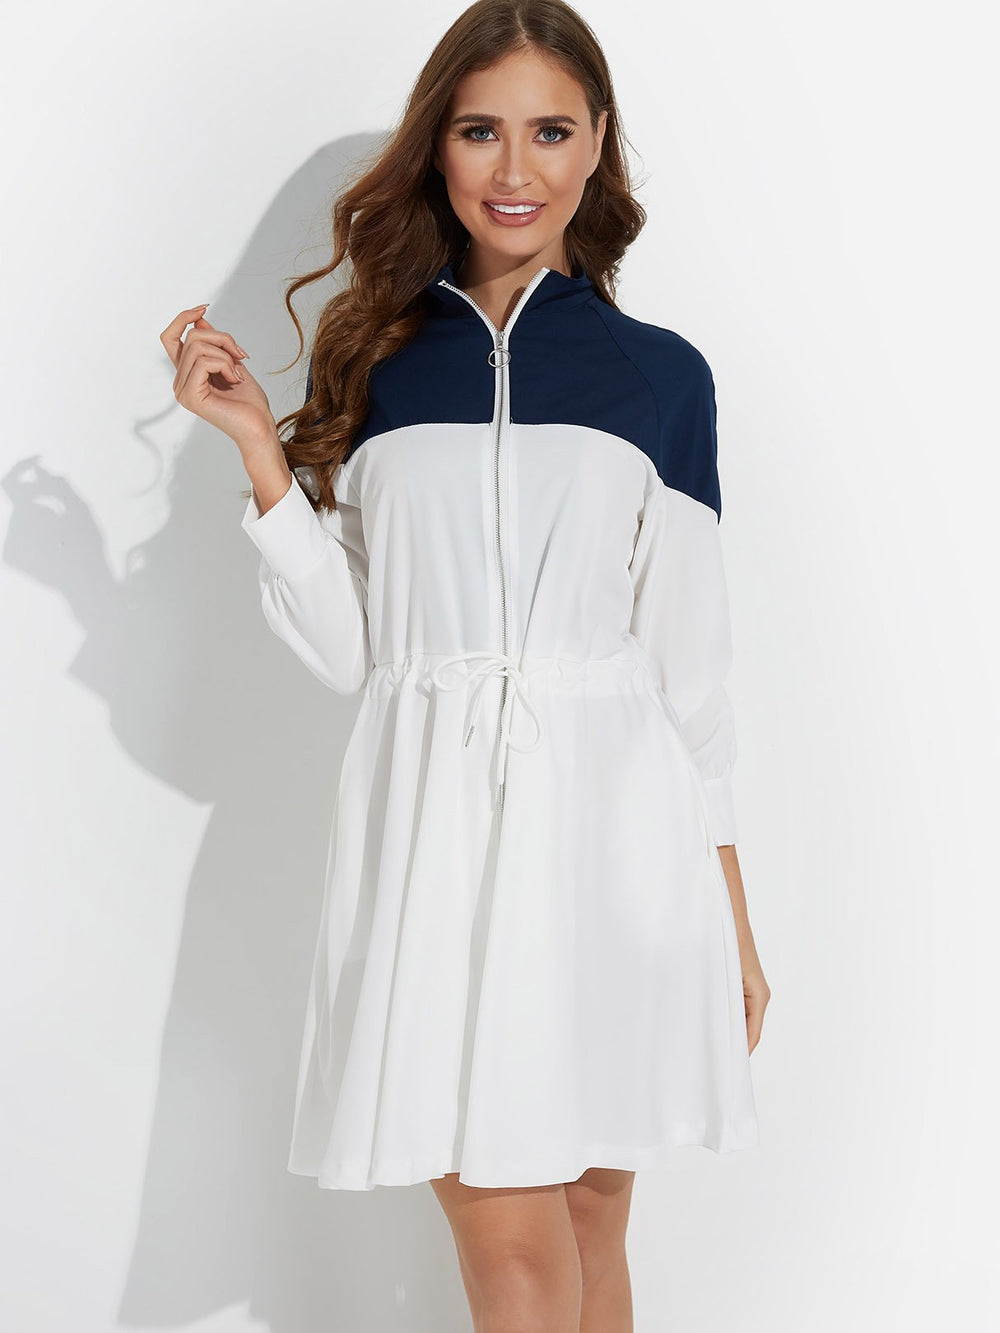 Womens 3/4 Sleeve Dresses